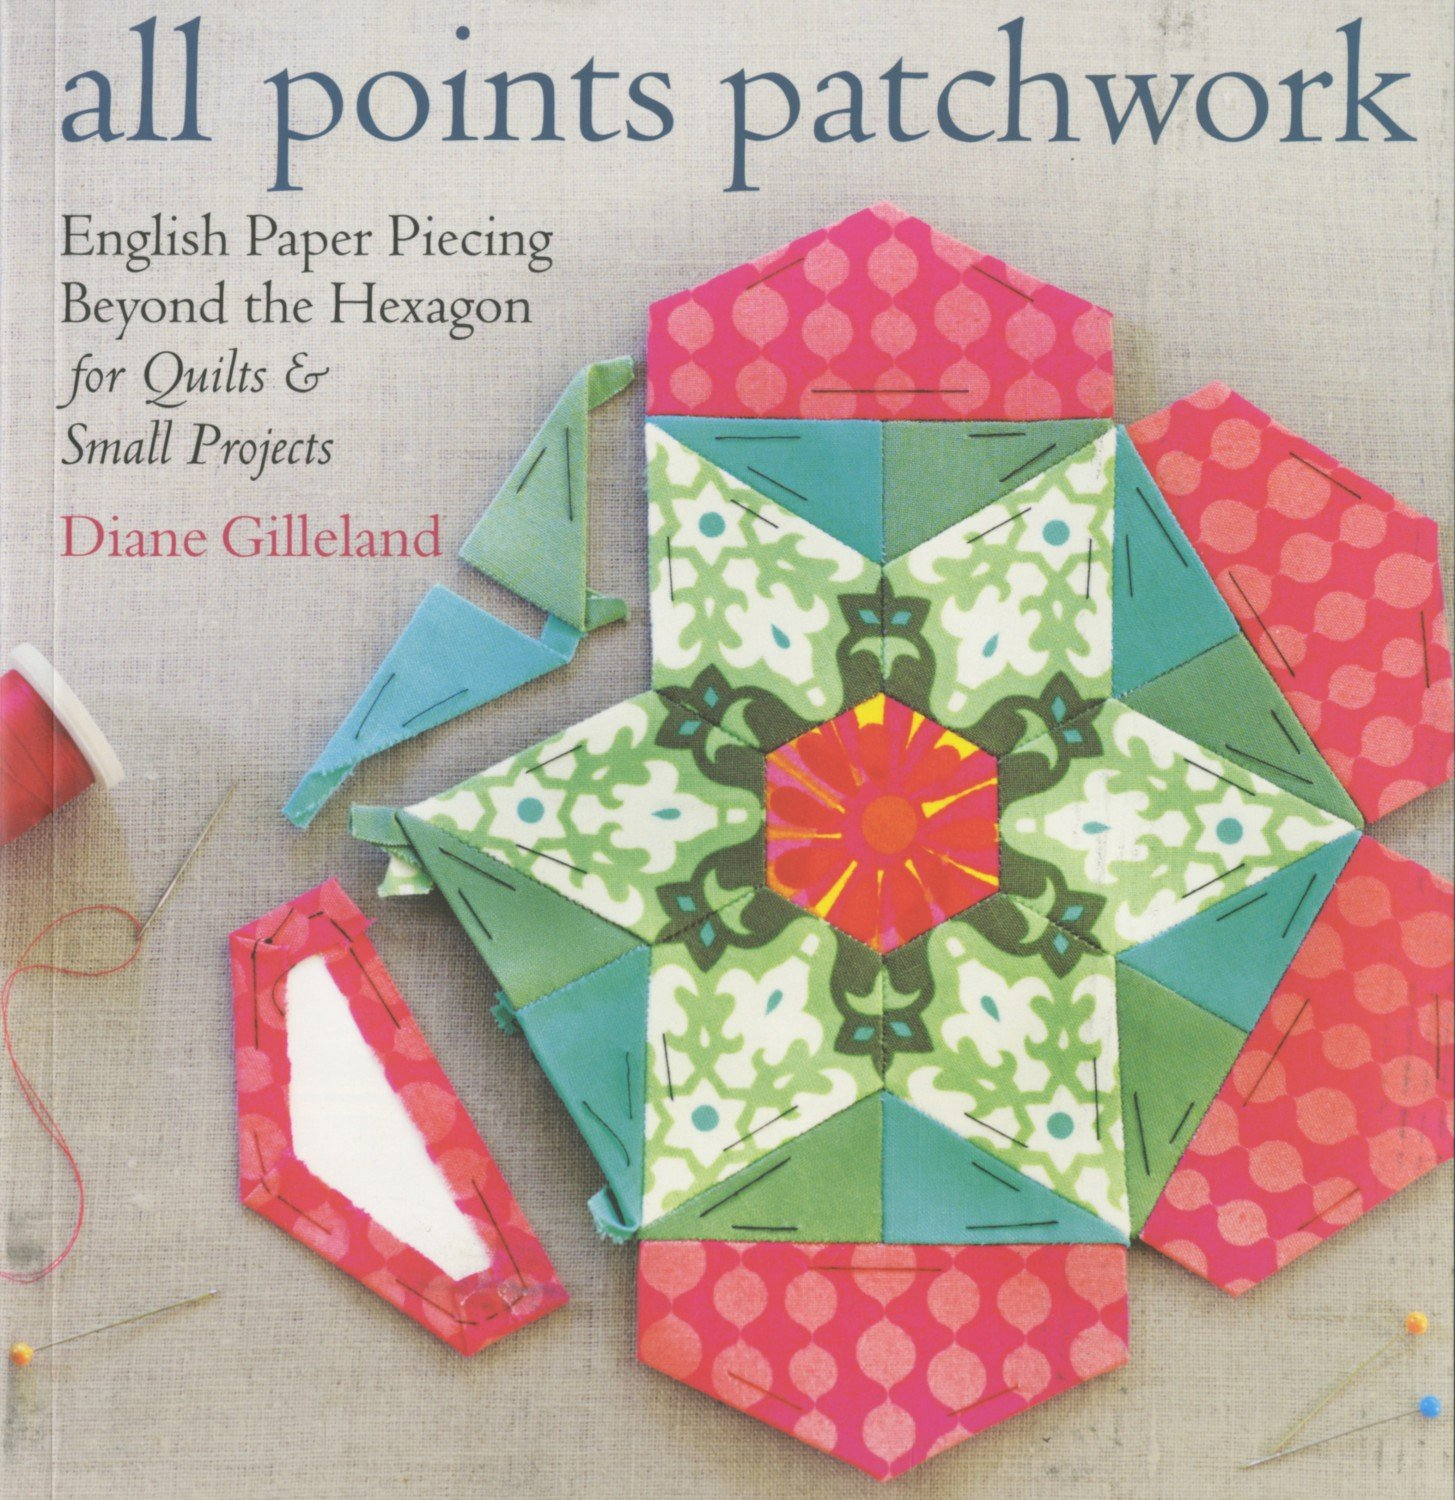 All Points Patchwork